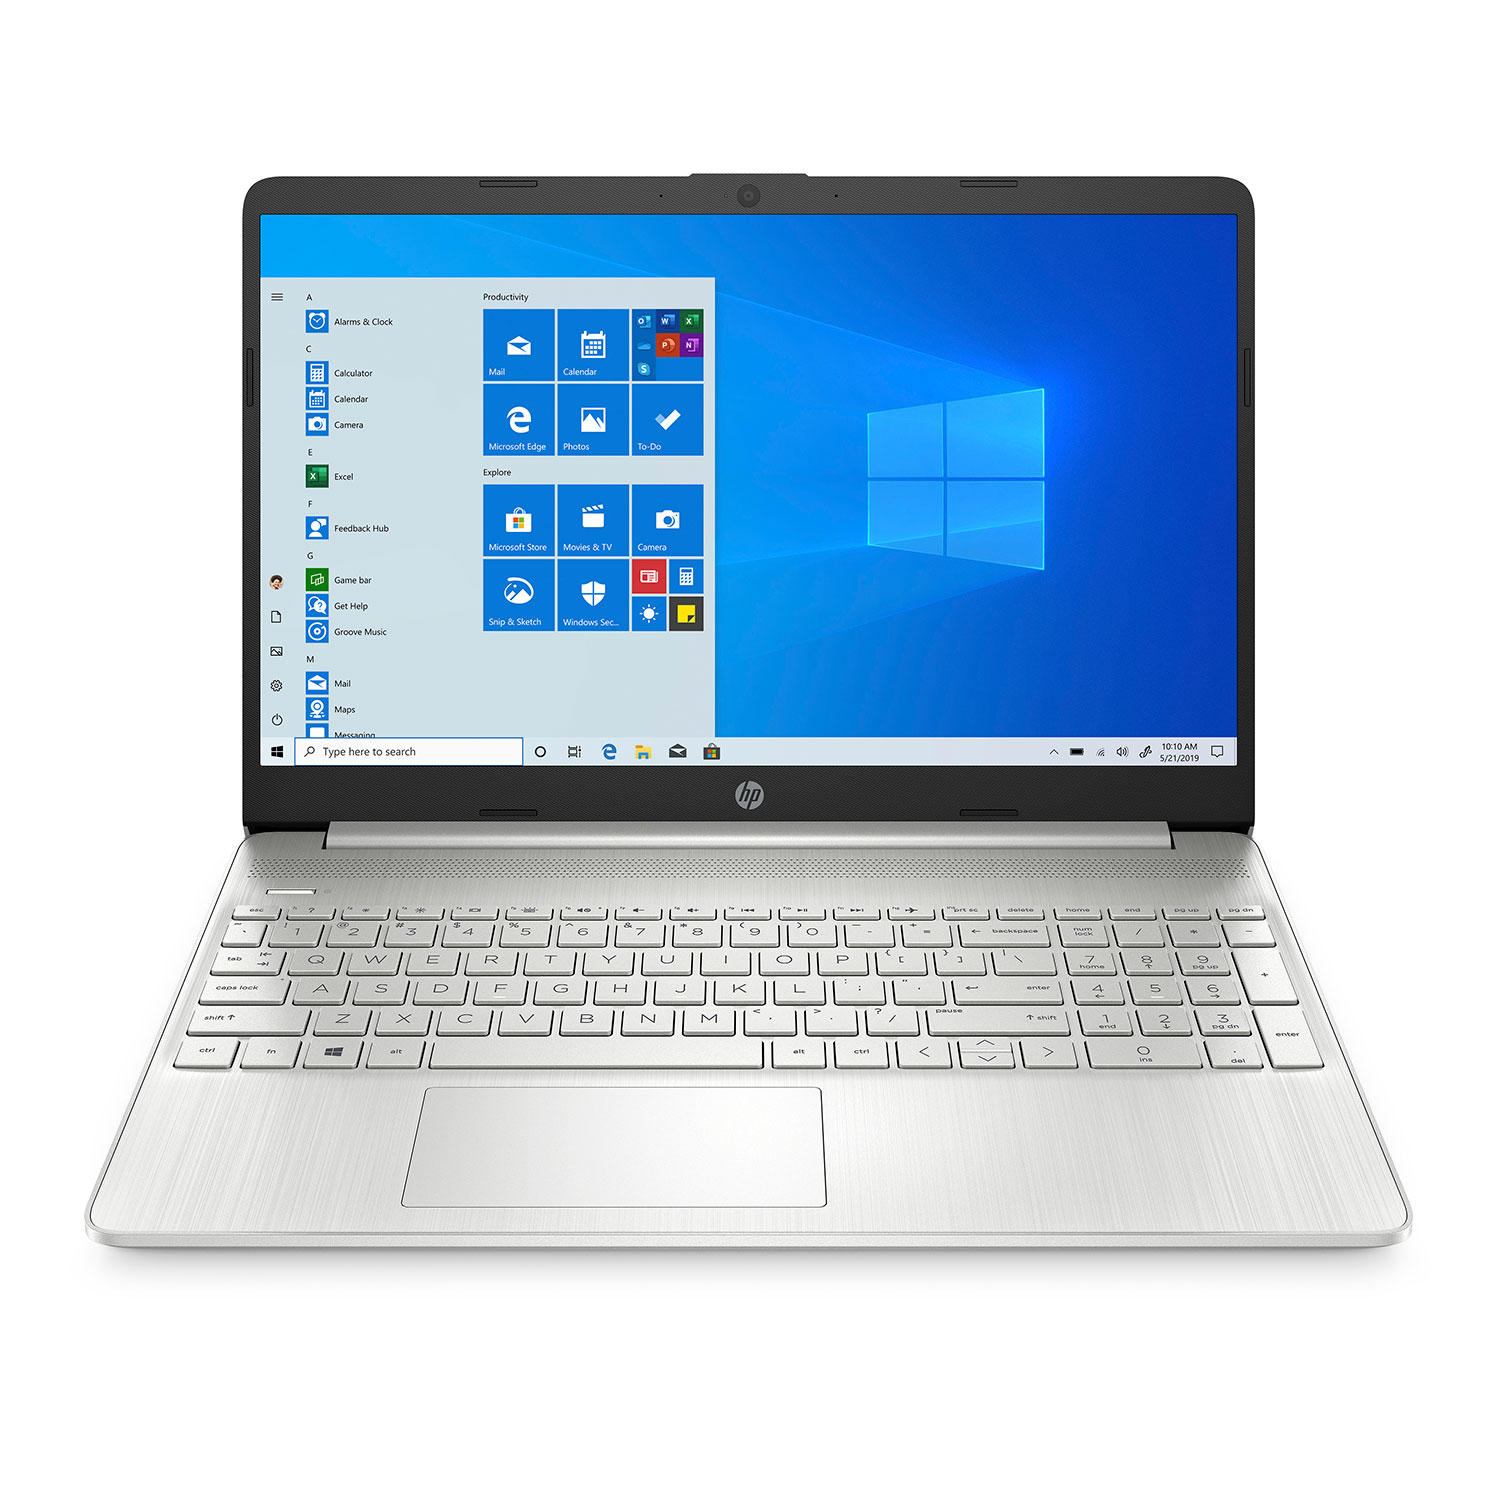 "HP 15-dy-1042cl 15.6"" HD Laptop (i3-1005G1 / 8GB / 256GB SSD)"